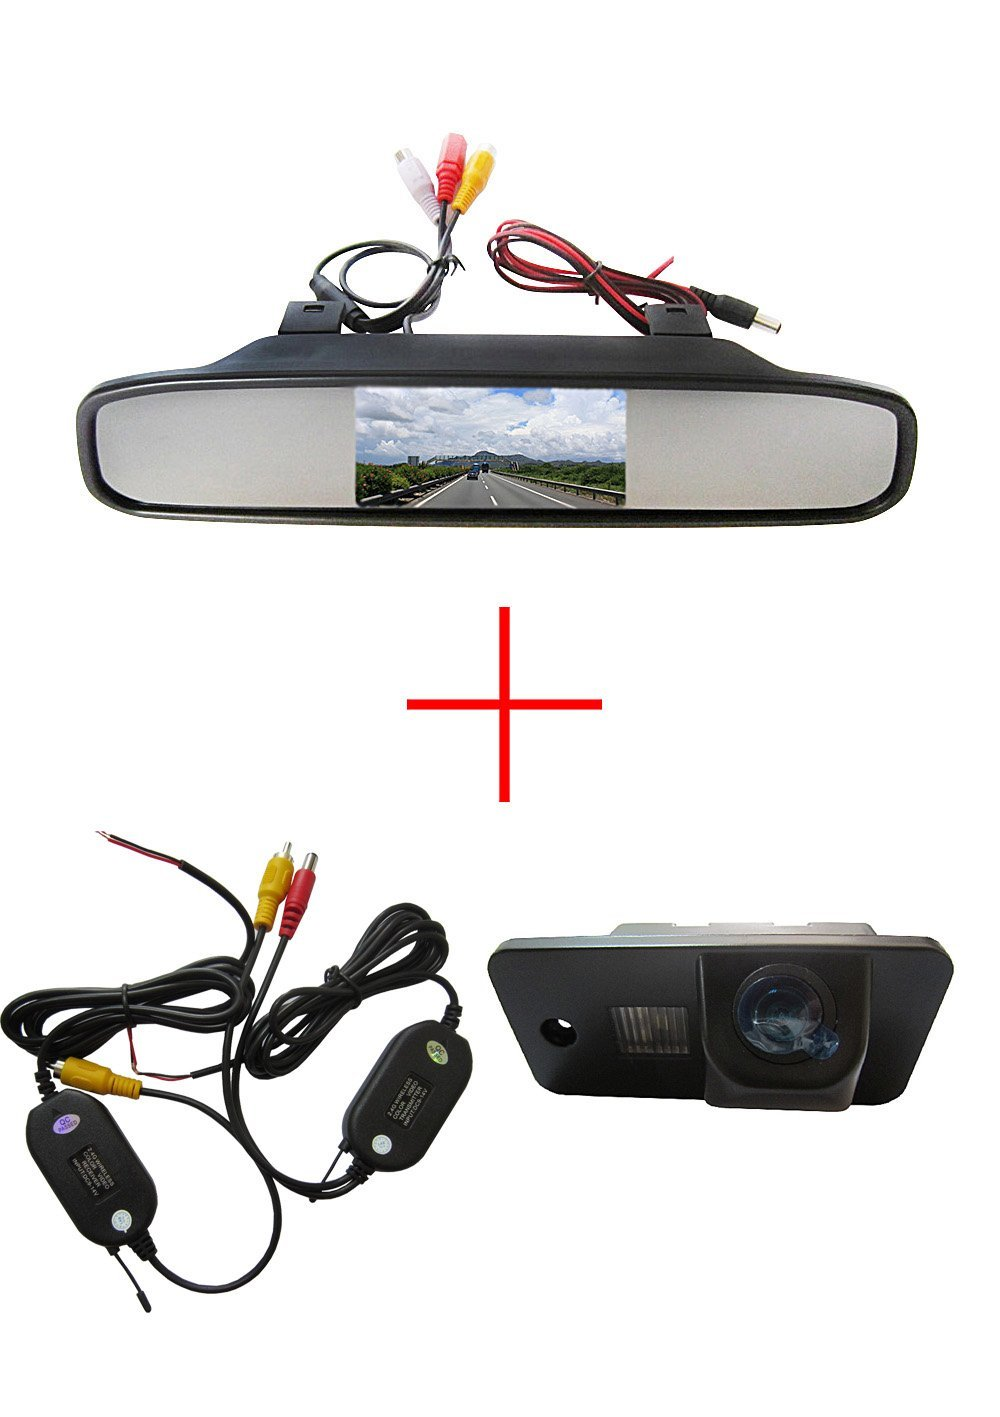 "Wireless CCD Auto Vehicle HD Color Car Reverse Rear View Parking Back Up Camera for AUDI A3 S3 A4 S4 A6 A6L S6 A8 S8 RS4 RS6 Q7,with 4.3"" Screen Car Vehicle Rear view Mirror Monitor for DVD/VCR/Car Reverse Camera(DC 12V / PAL / NTSC / 2 Ways Video Inputs)"